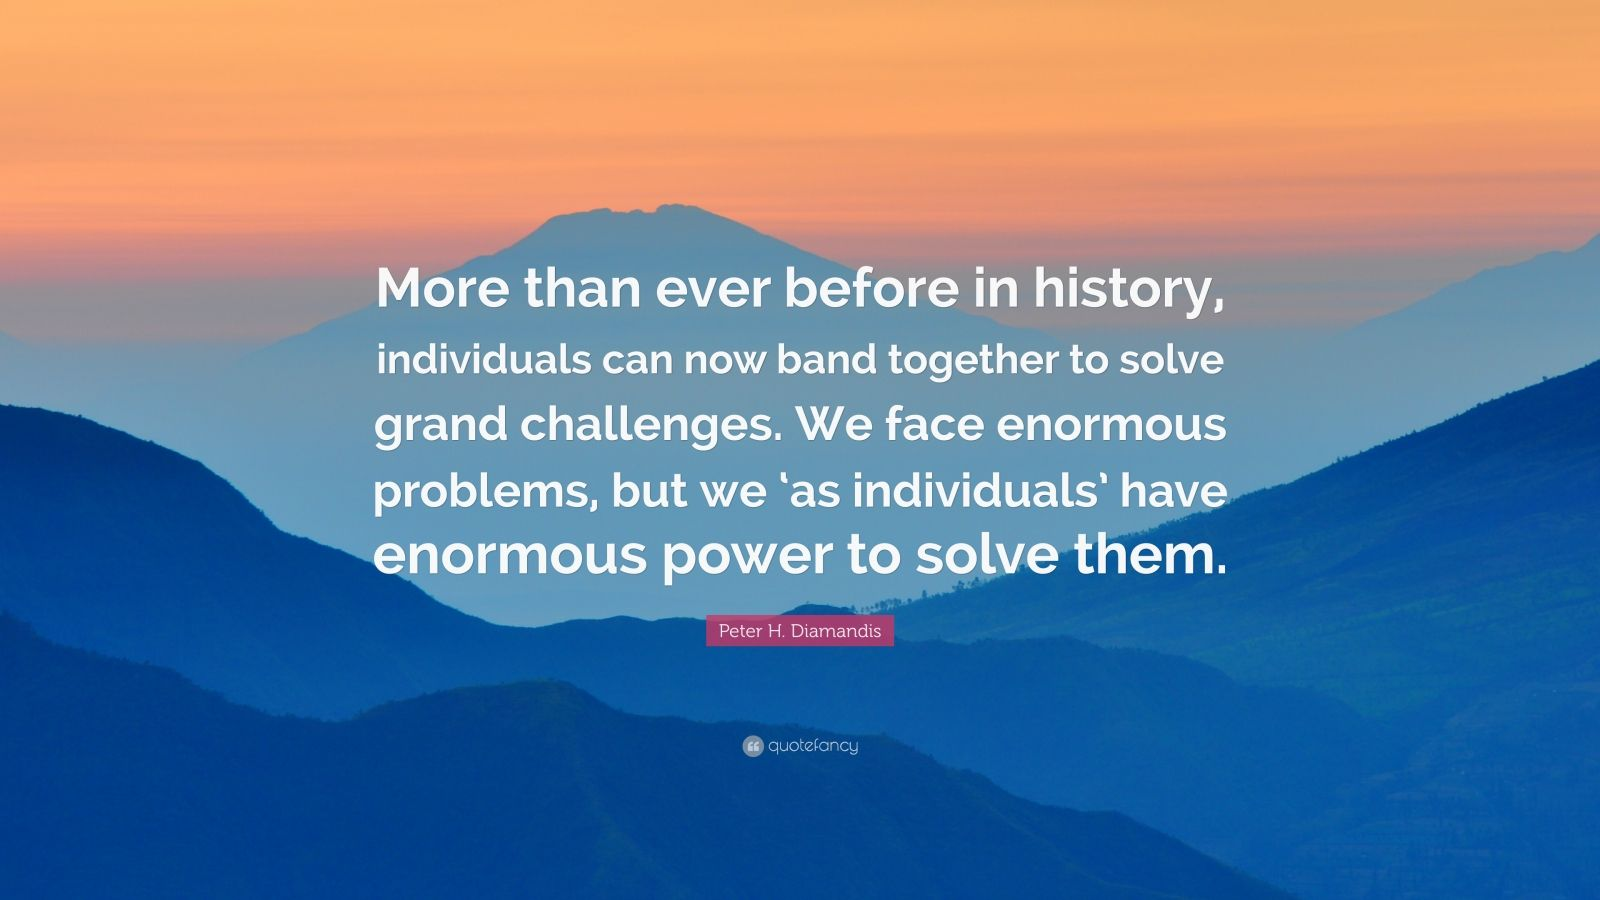 "Peter H. Diamandis Quote: ""More than ever before in history, individuals can now band together to solve grand challenges. We face enormous problems, but we 'as individuals' have enormous power to solve them."""